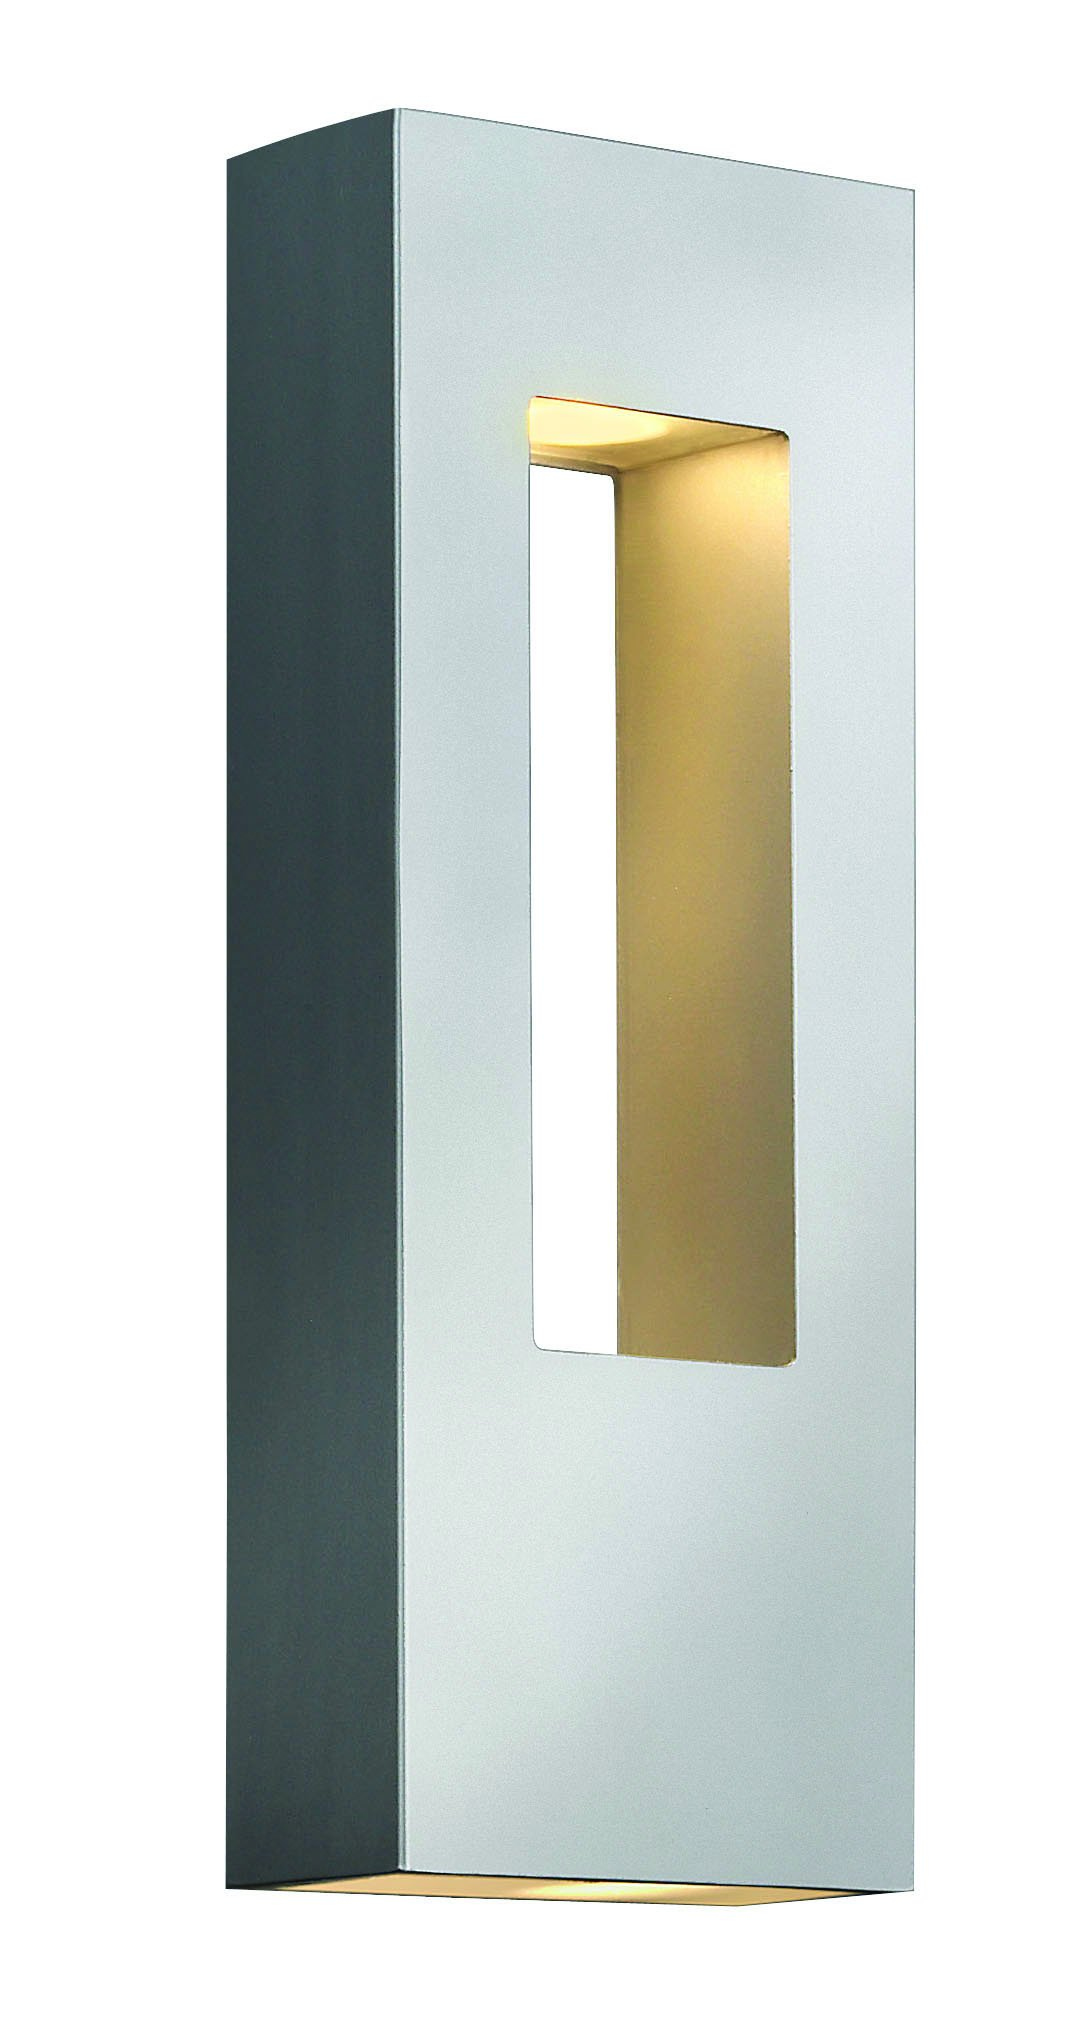 Hinkley 1648TT Contemporary Modern Two Light Wall Mount from Atlantis collection in Pwt, Nckl, B/S, Slvr.finish, by Hinkley